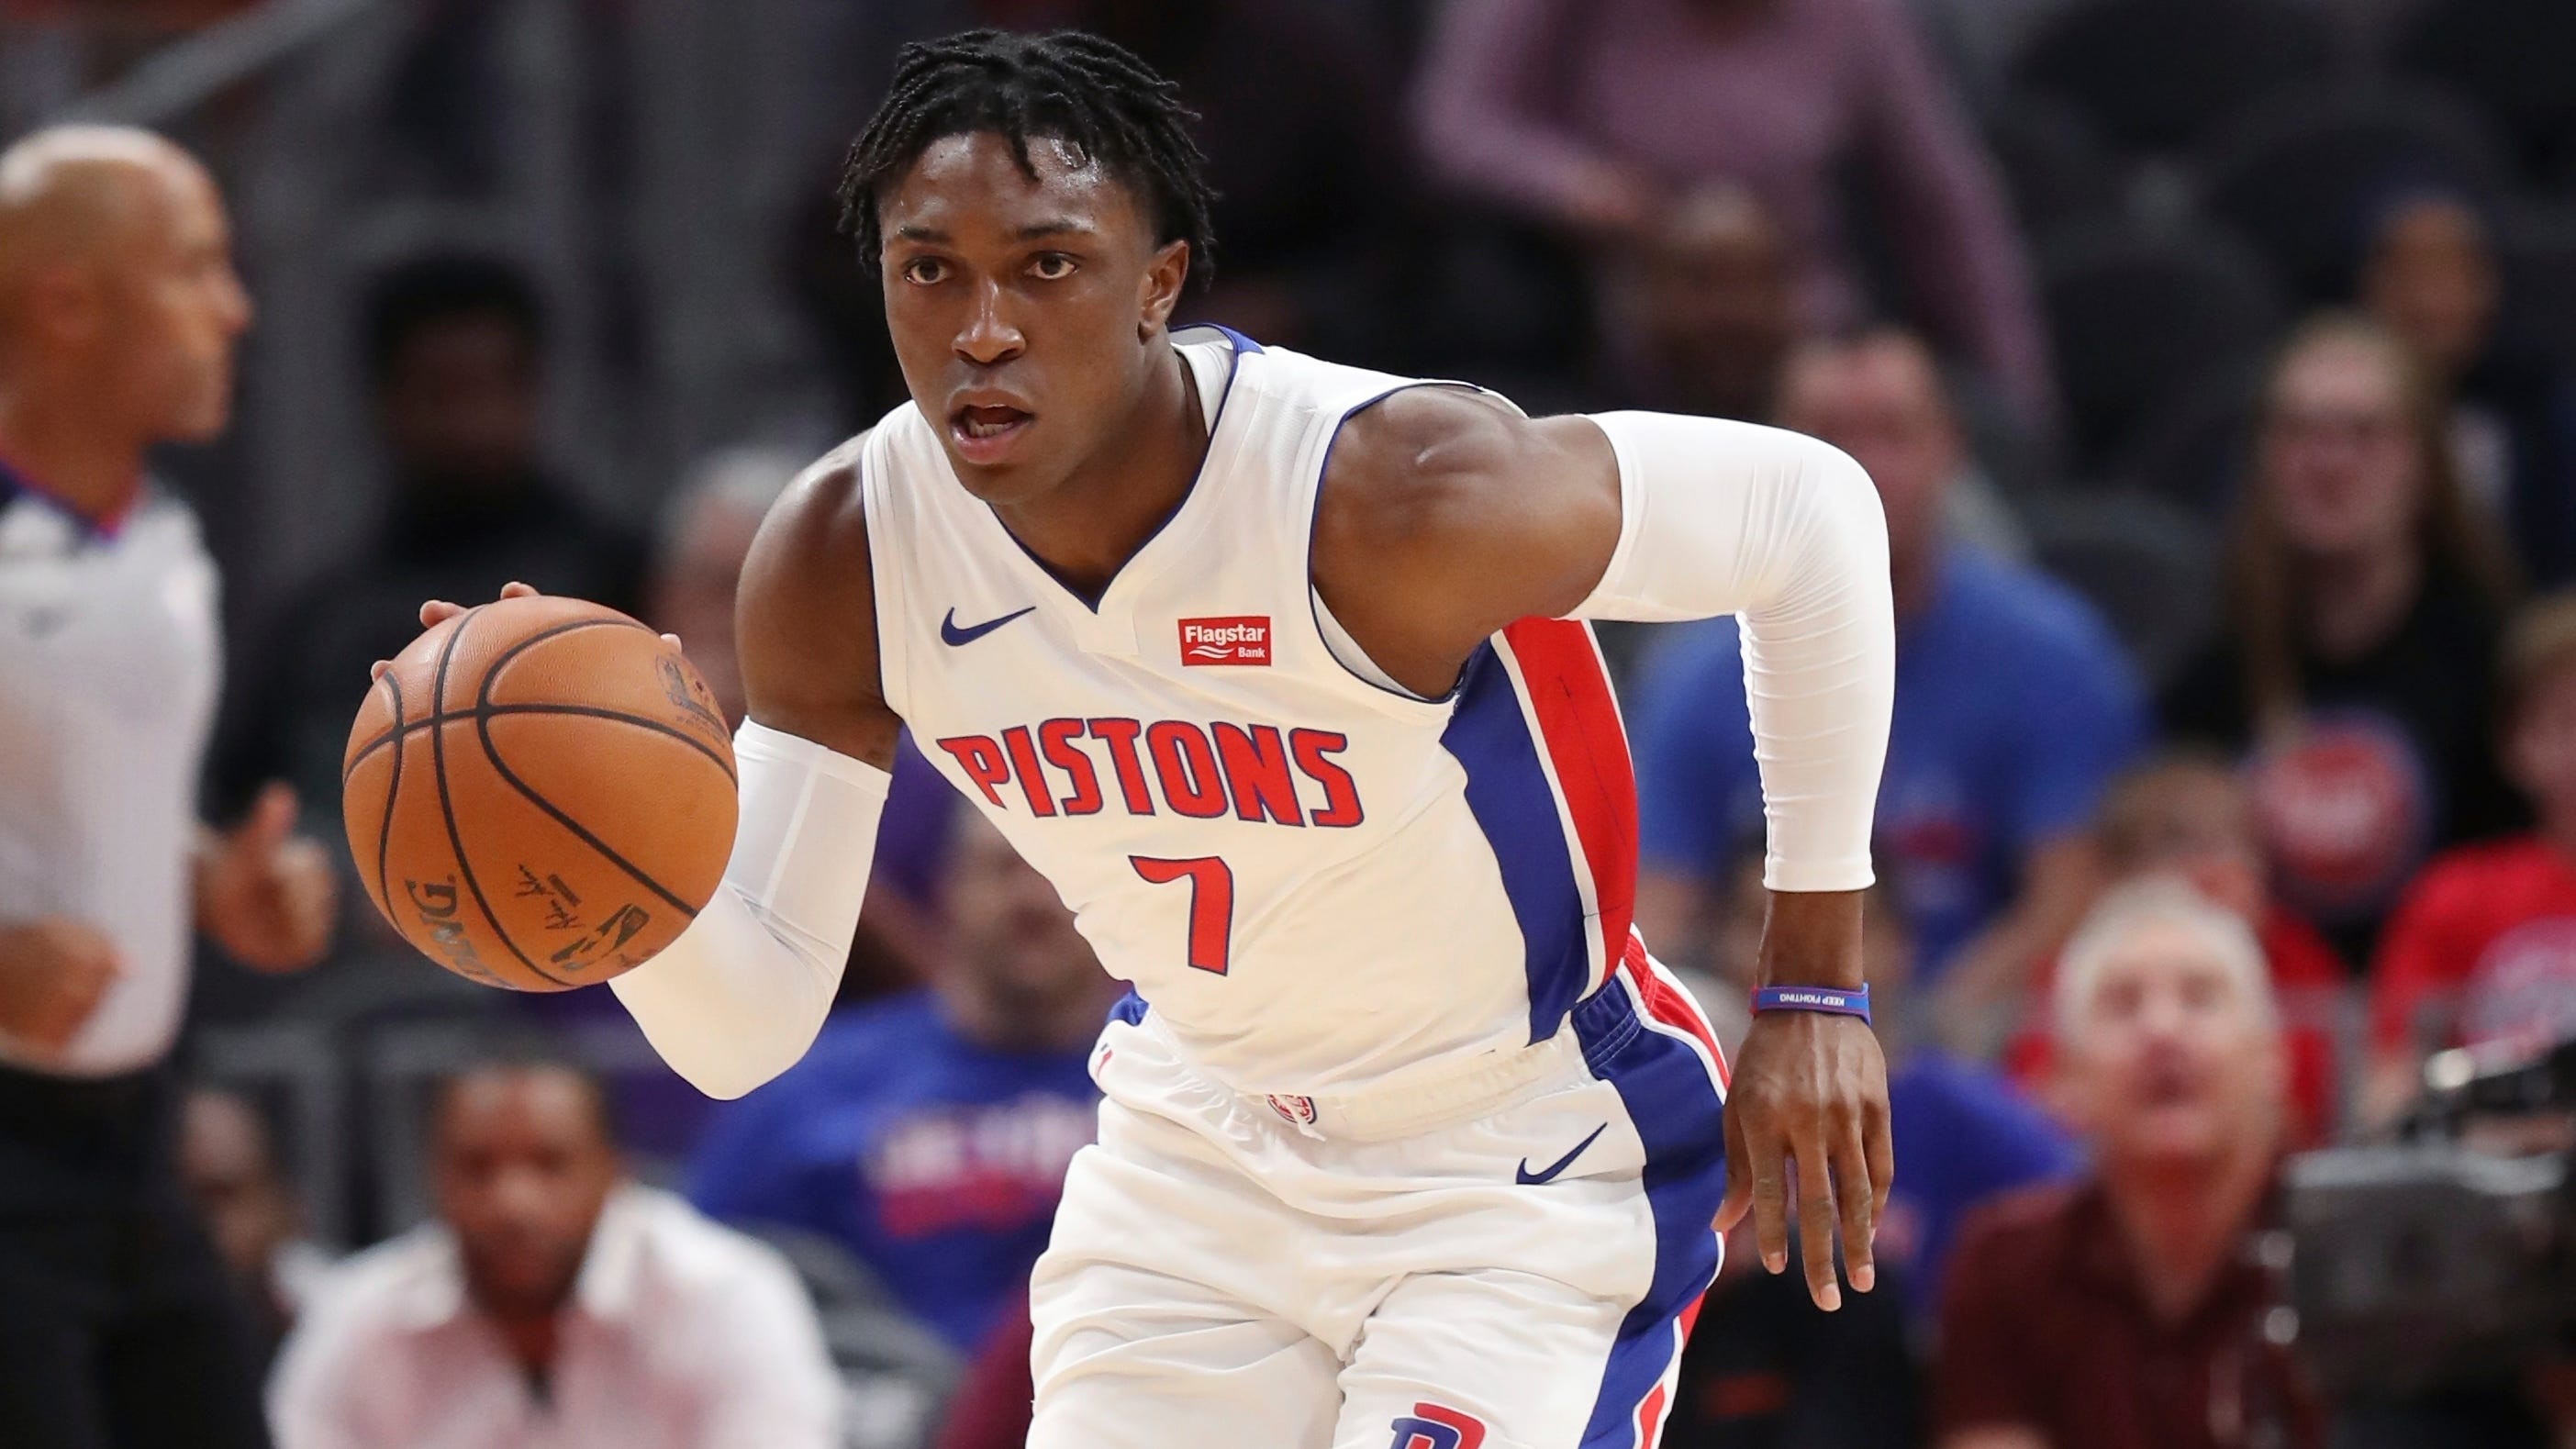 Stanley Johnson out for Pistons' opener with sore toe